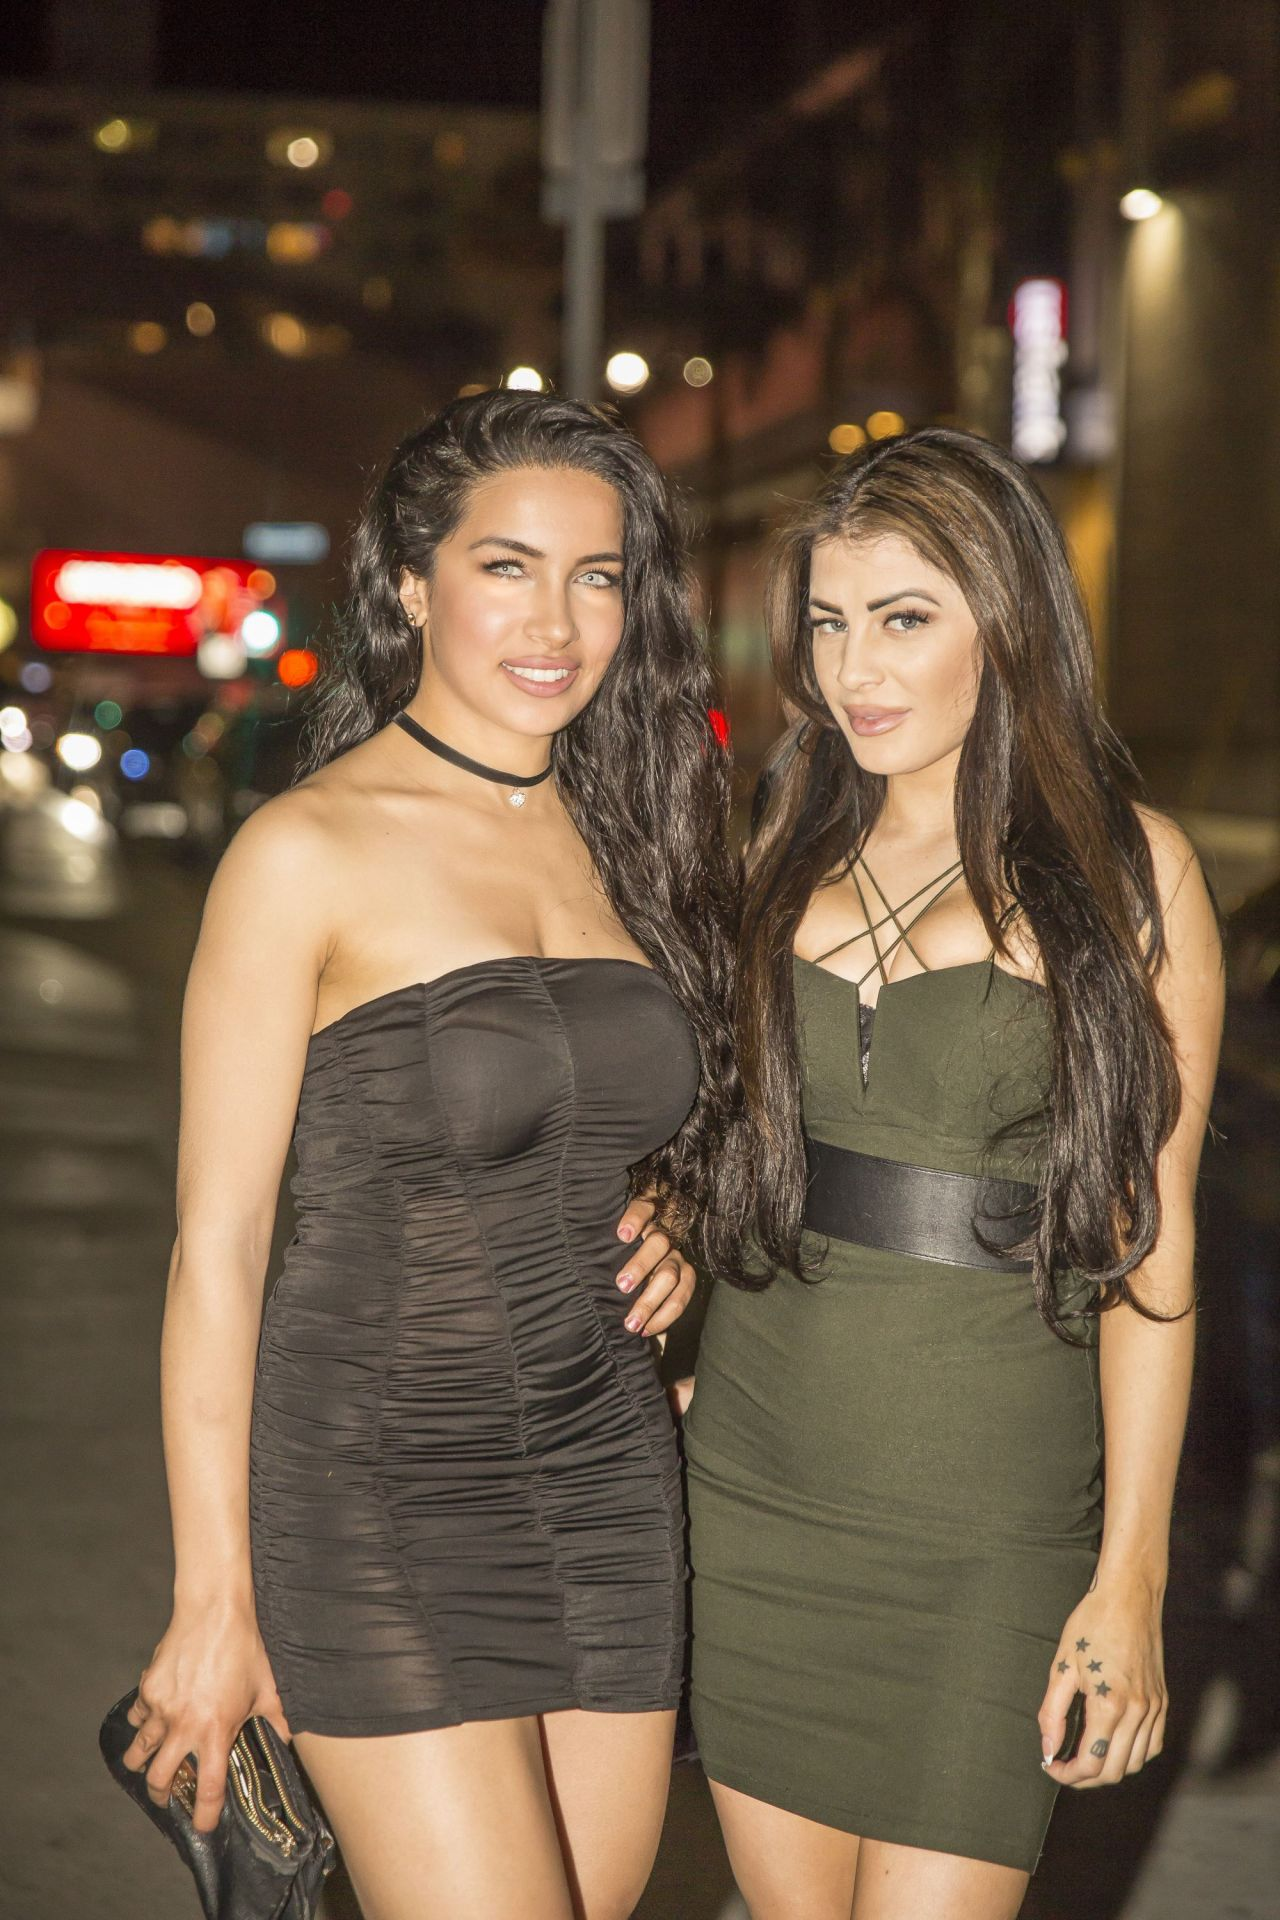 Sexiest Pictures: Melissa Howe & Nasia Jansen Night Out